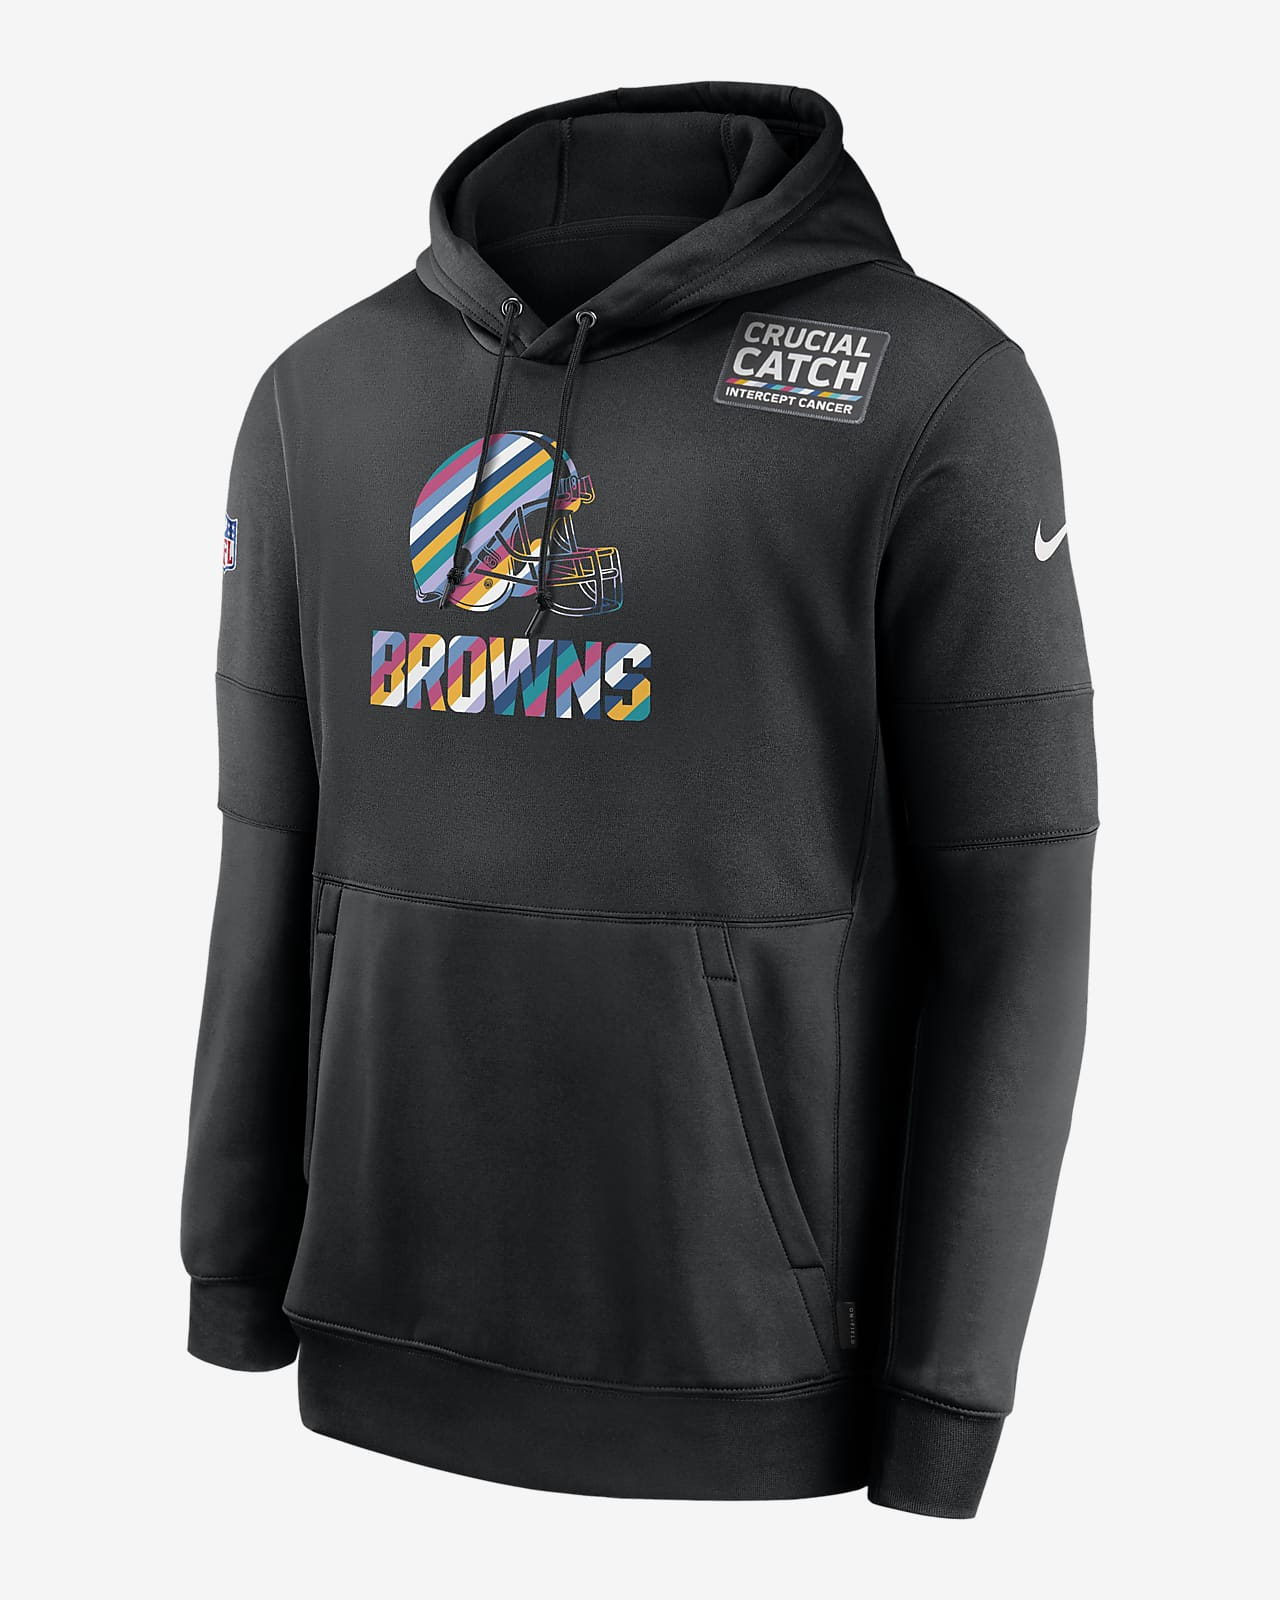 Nike Therma Crucial Catch (NFL Browns) Men's Hoodie